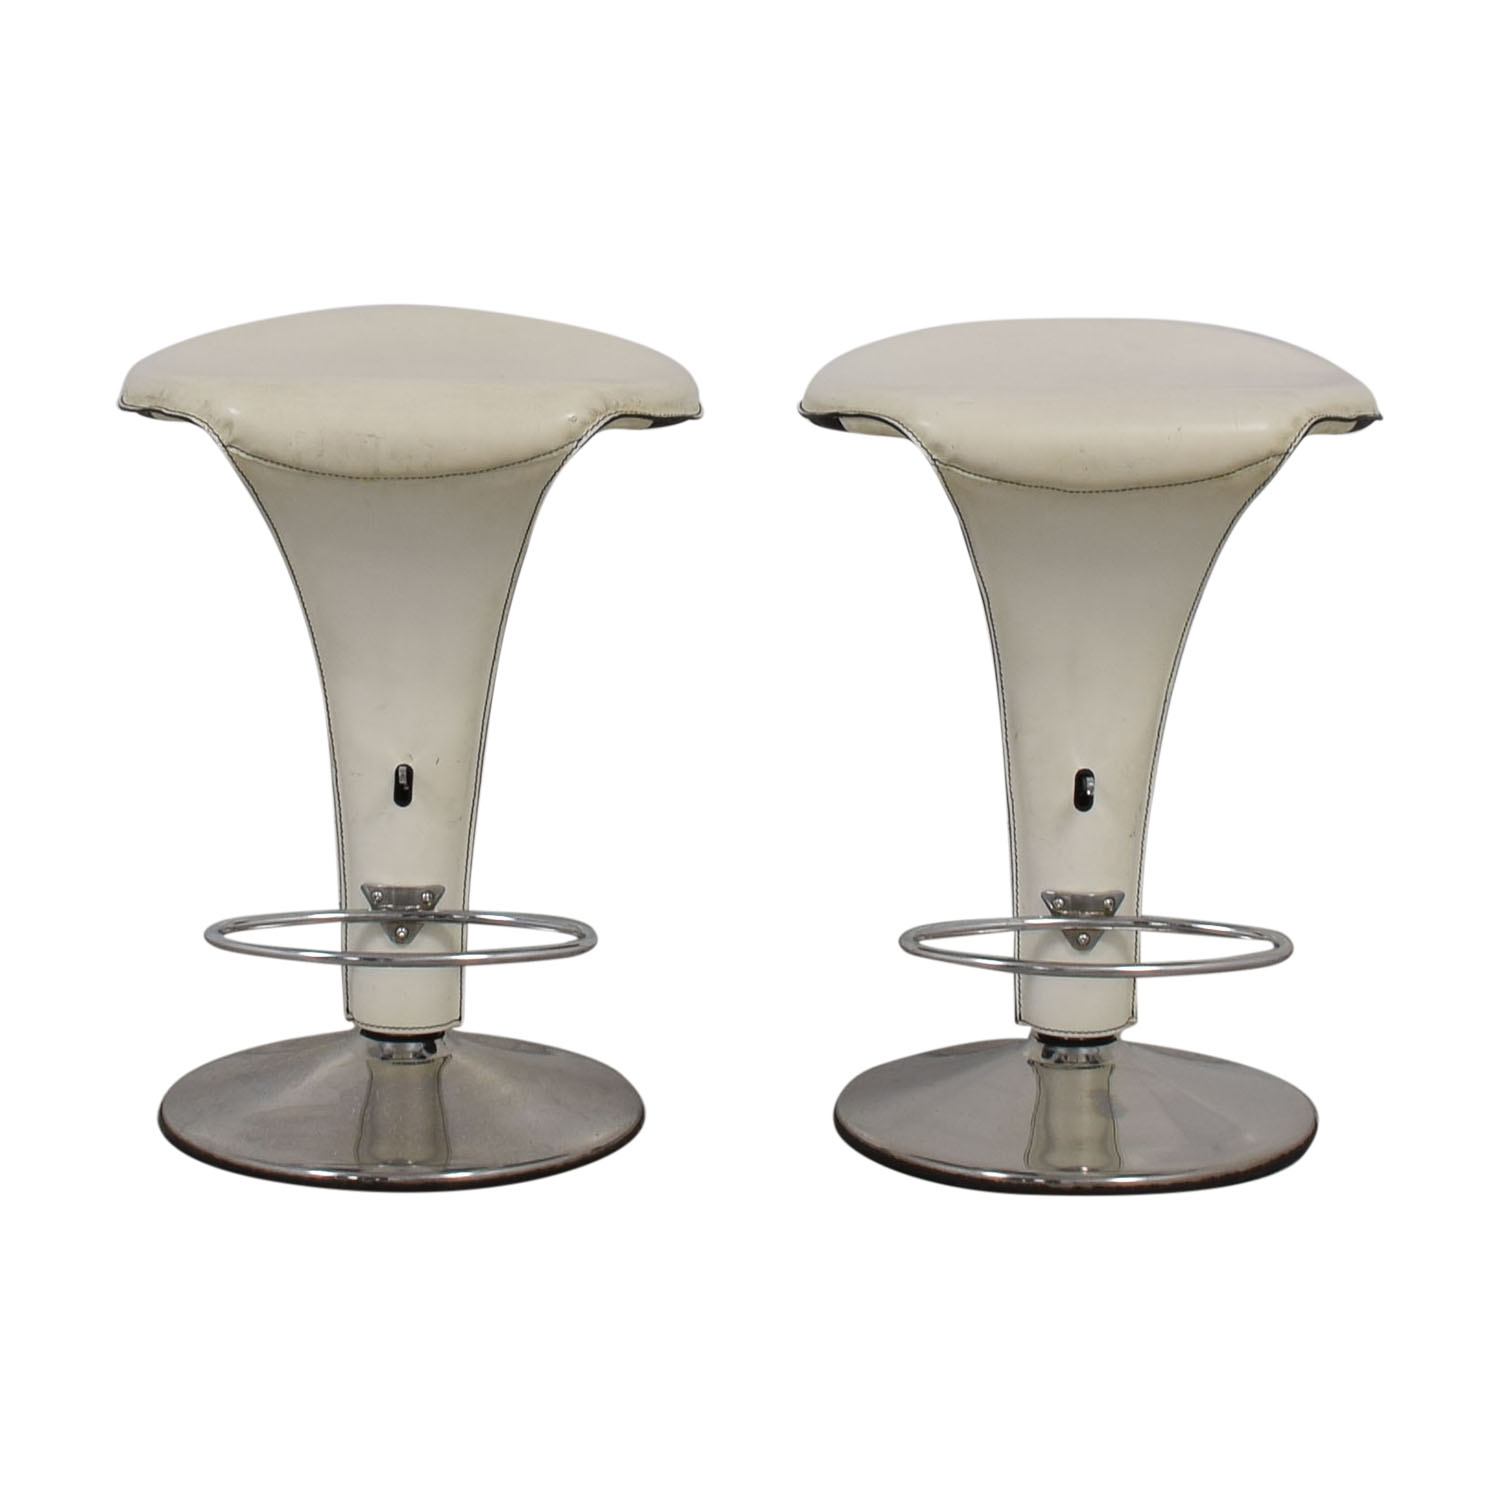 Cattelan Italia Cattelan Italia White and Chrome Boss Stools second hand